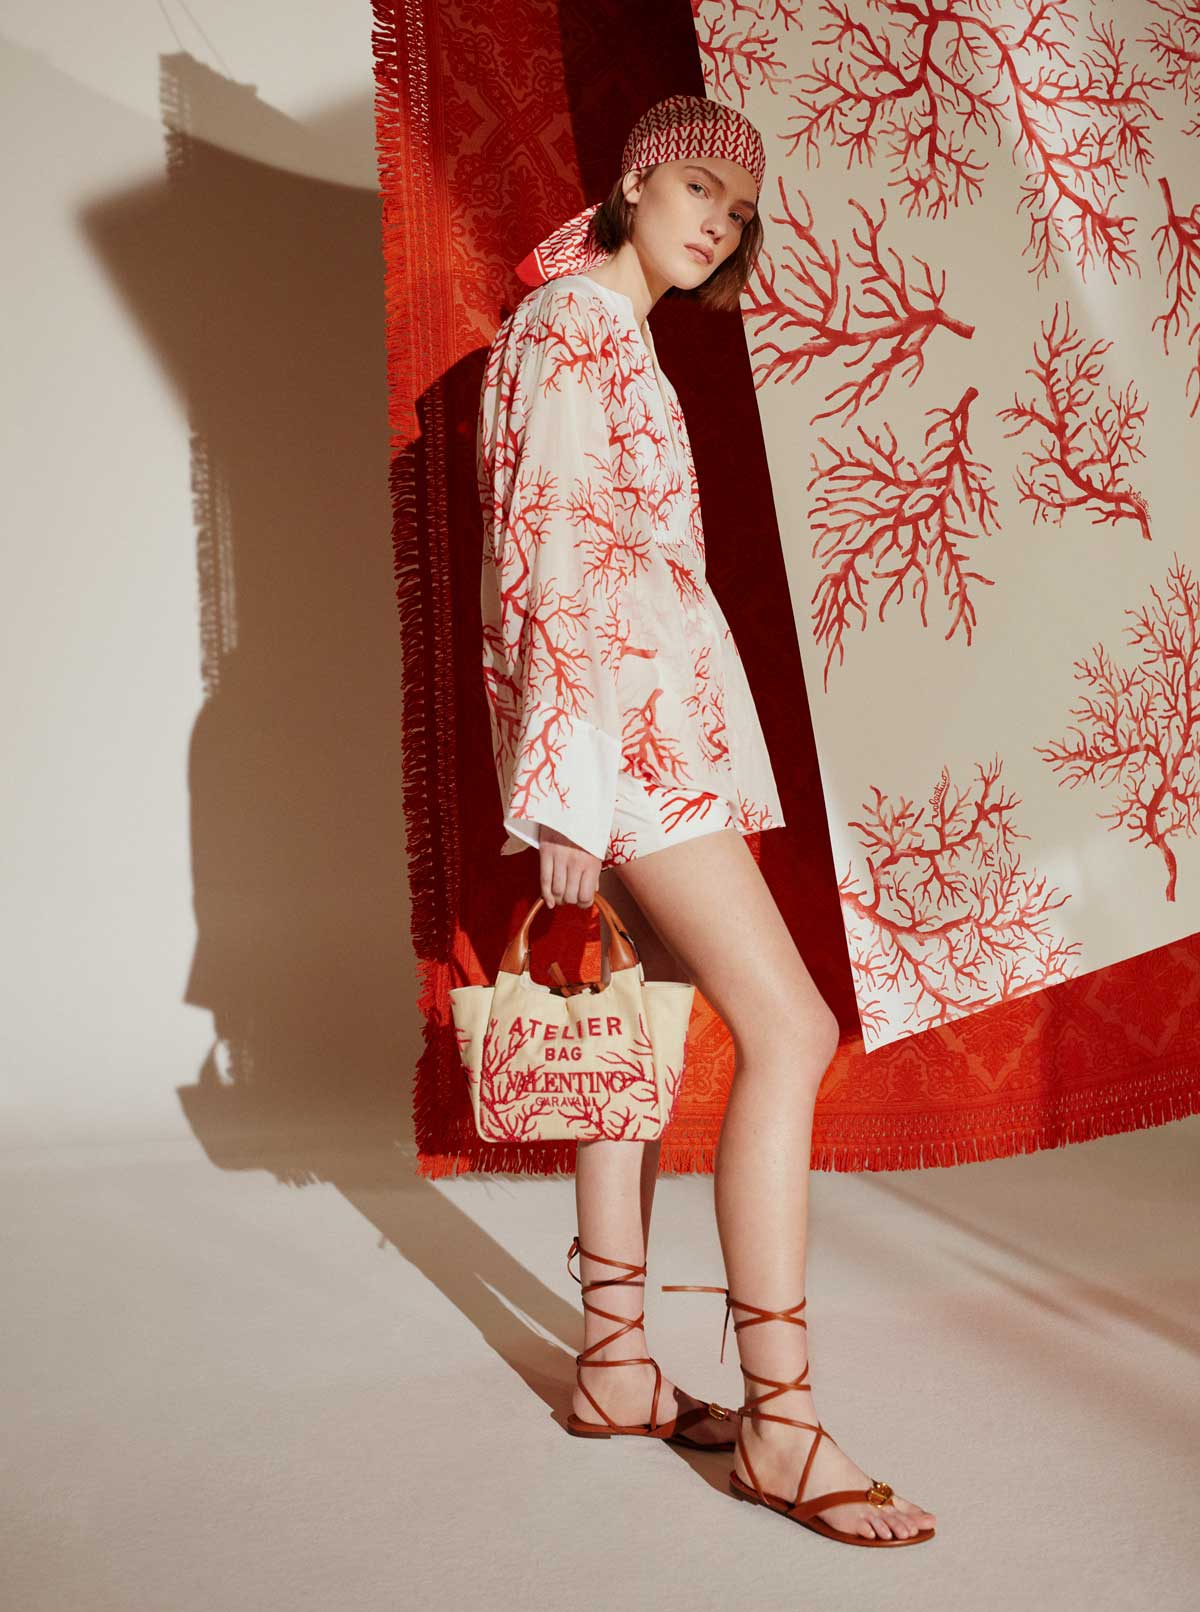 Valentino Escape 2021 Capsule collection with MyTheresa